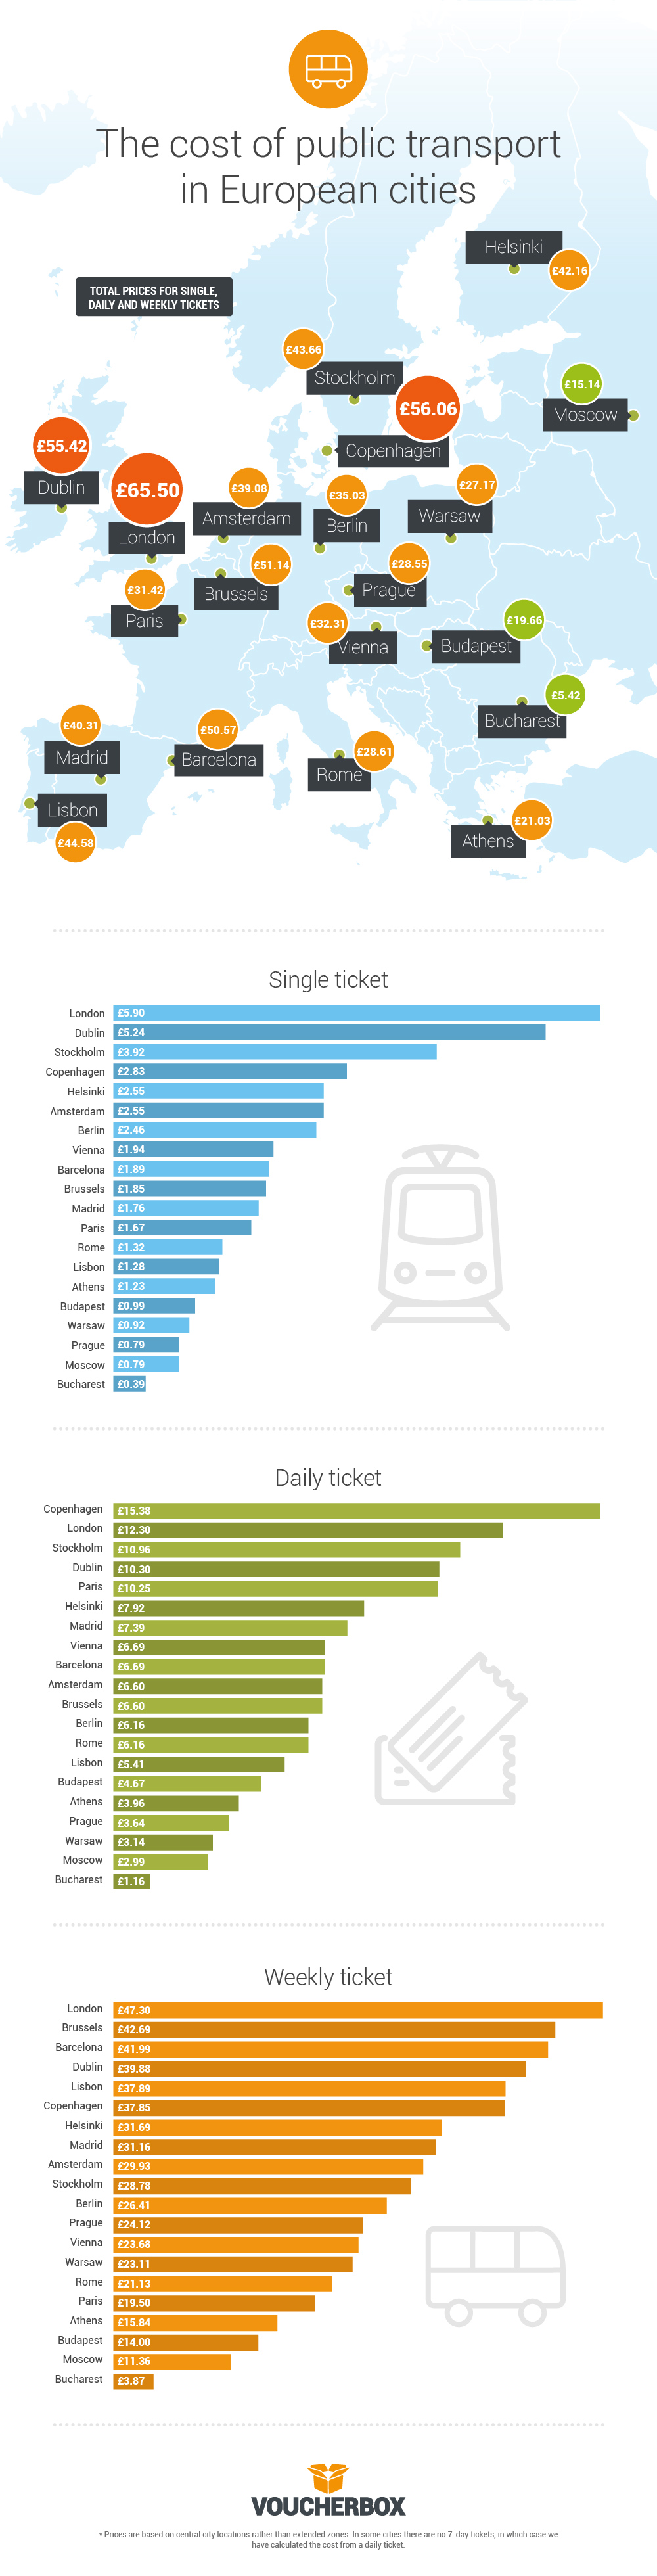 170517 4 de infografik europavergleich r00 1 Fare deal? London public transport up to 15 times more expensive than other European capitals